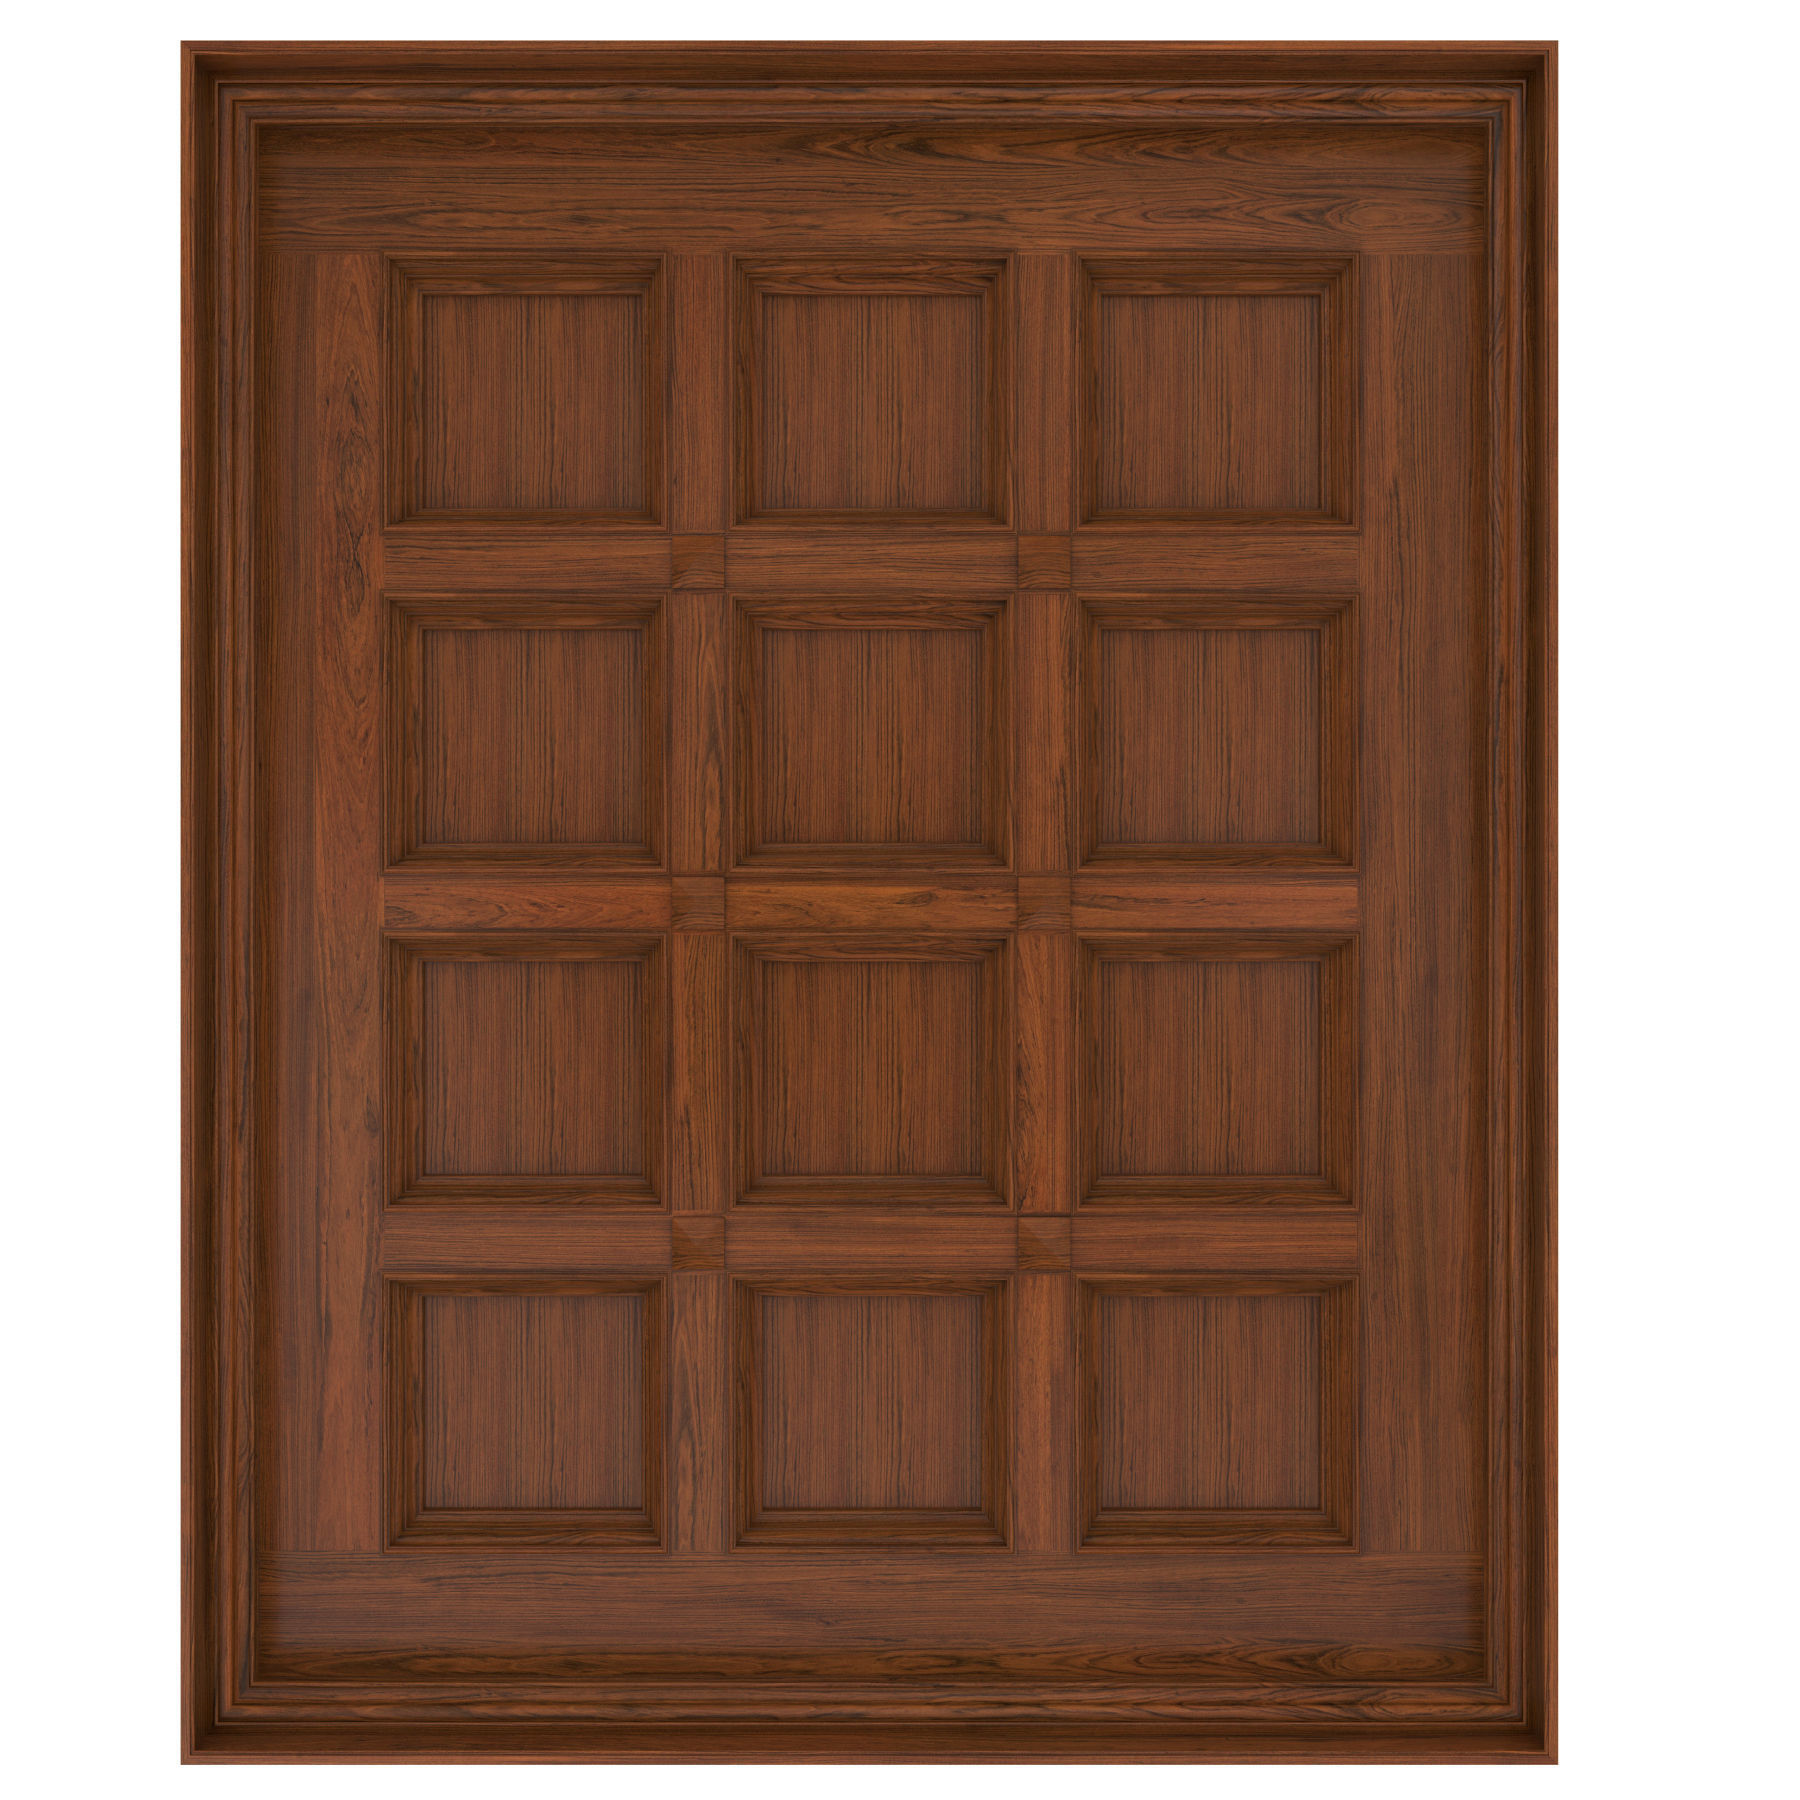 Classic wooden ceiling with caissons 01